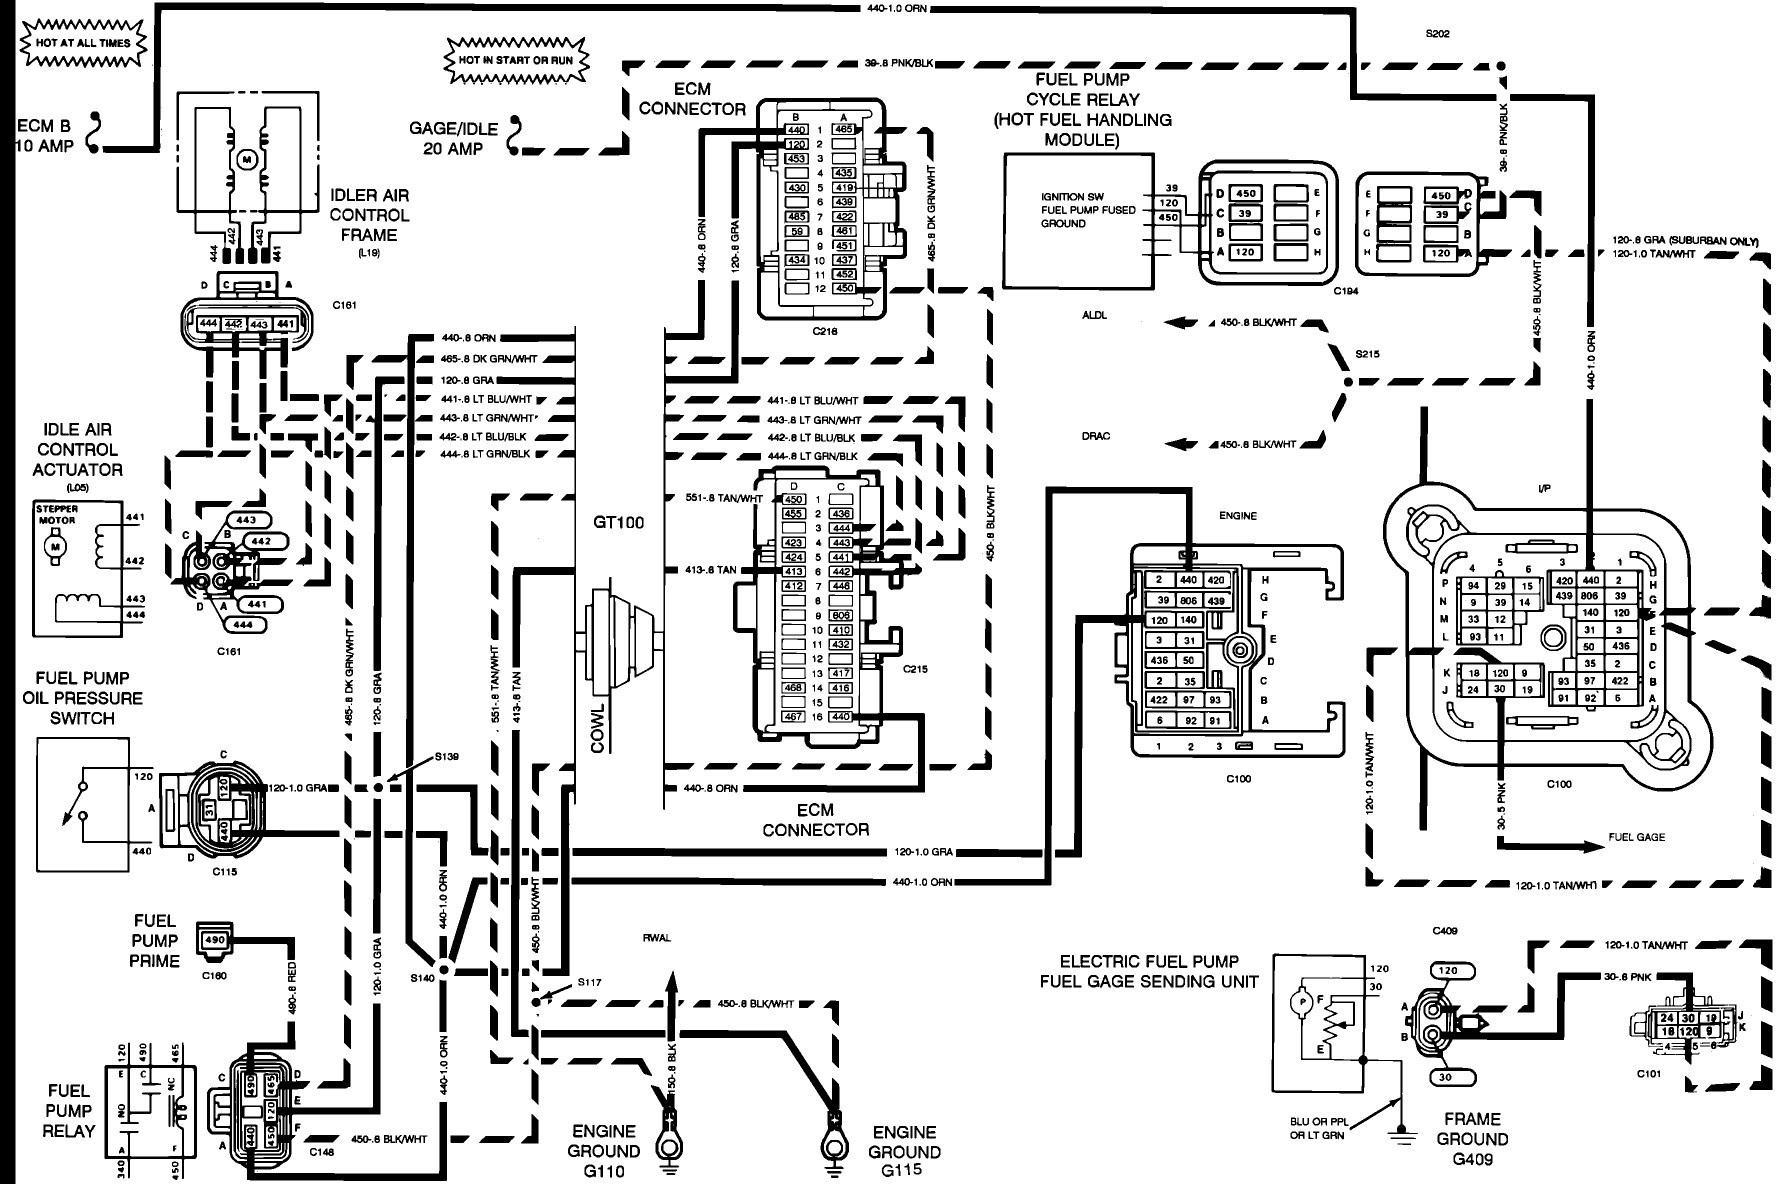 [DIAGRAM] Four Winds Motorhome Wiring Diagram FULL Version